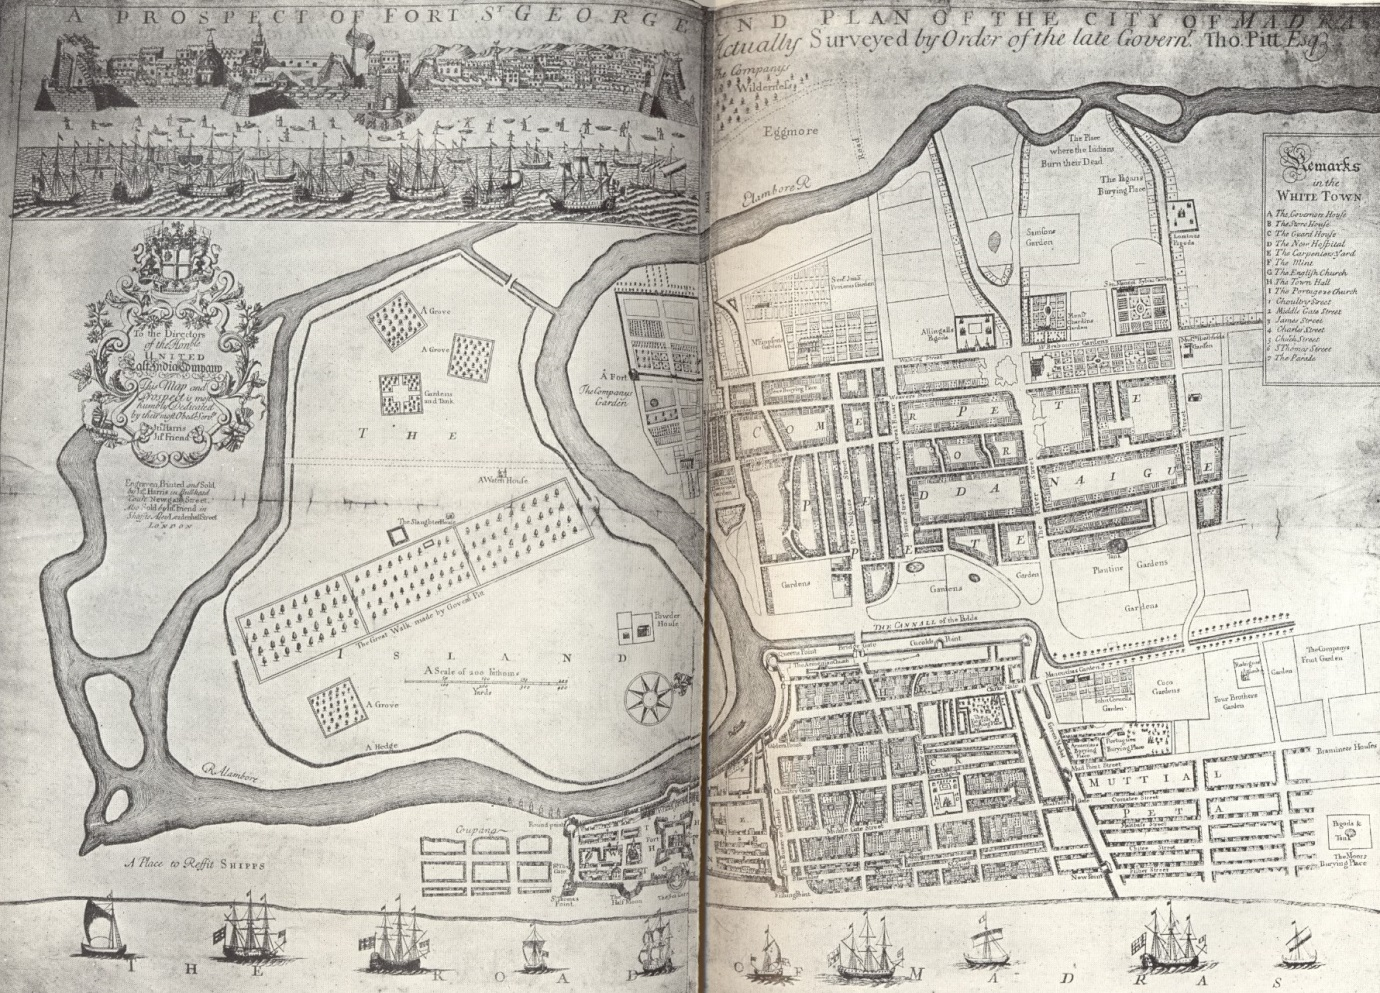 Prospect of Fort St George and Plan of the City of Madras. Picture courtesy Bodleian Library